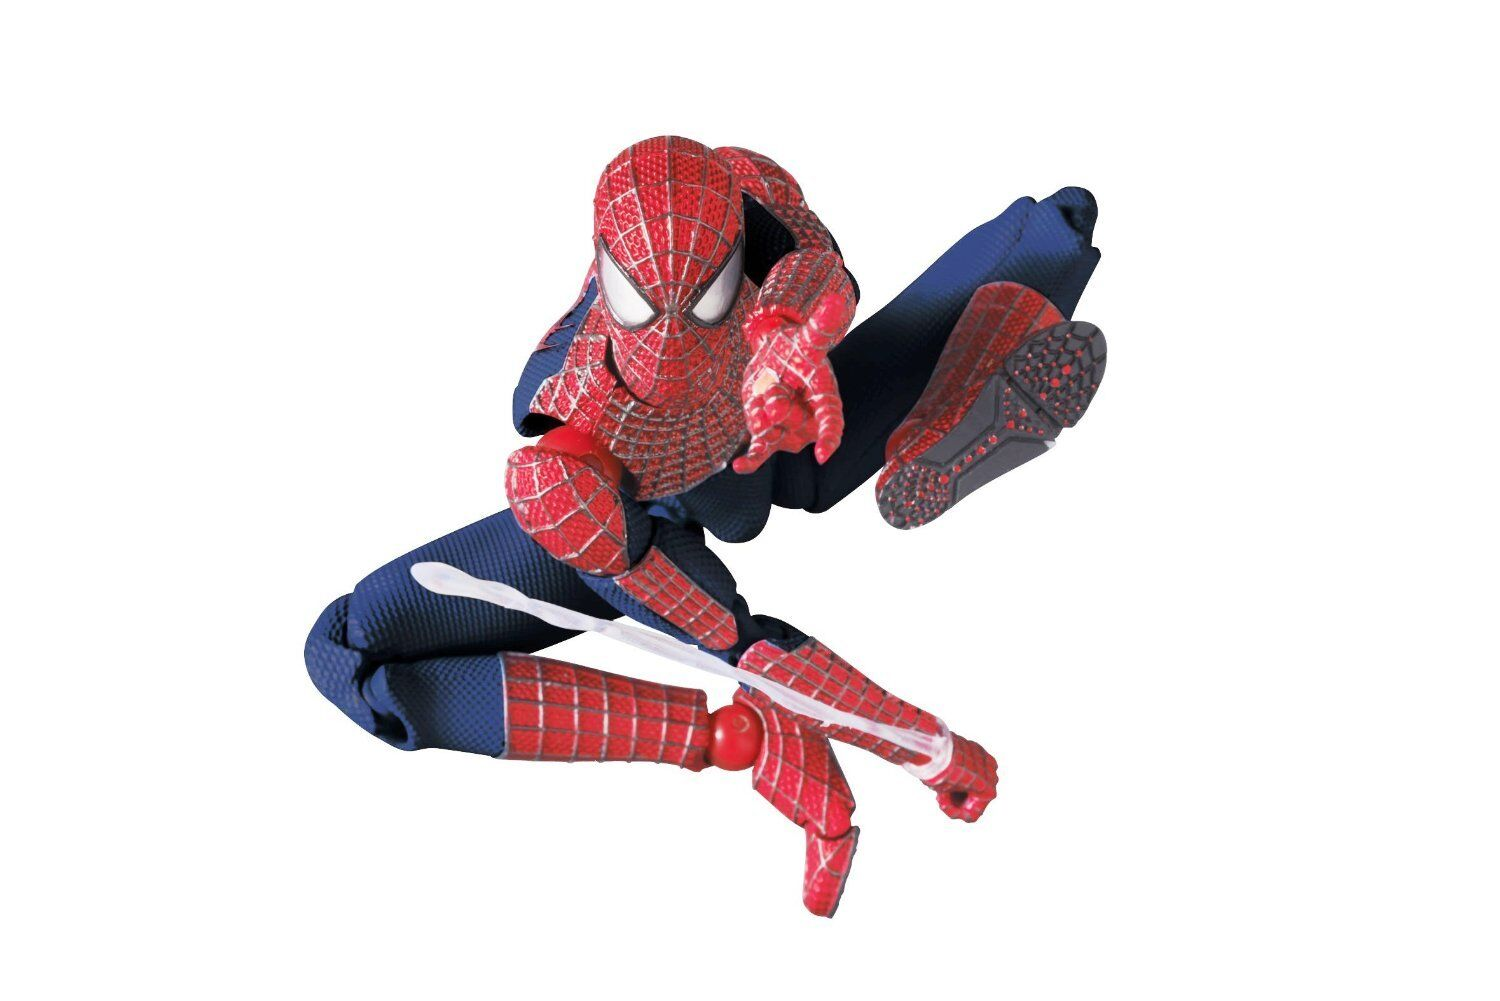 Medicom Toy MAFEX Spider-Man (THE AMAZING SPIDER-MAN2) Japan version